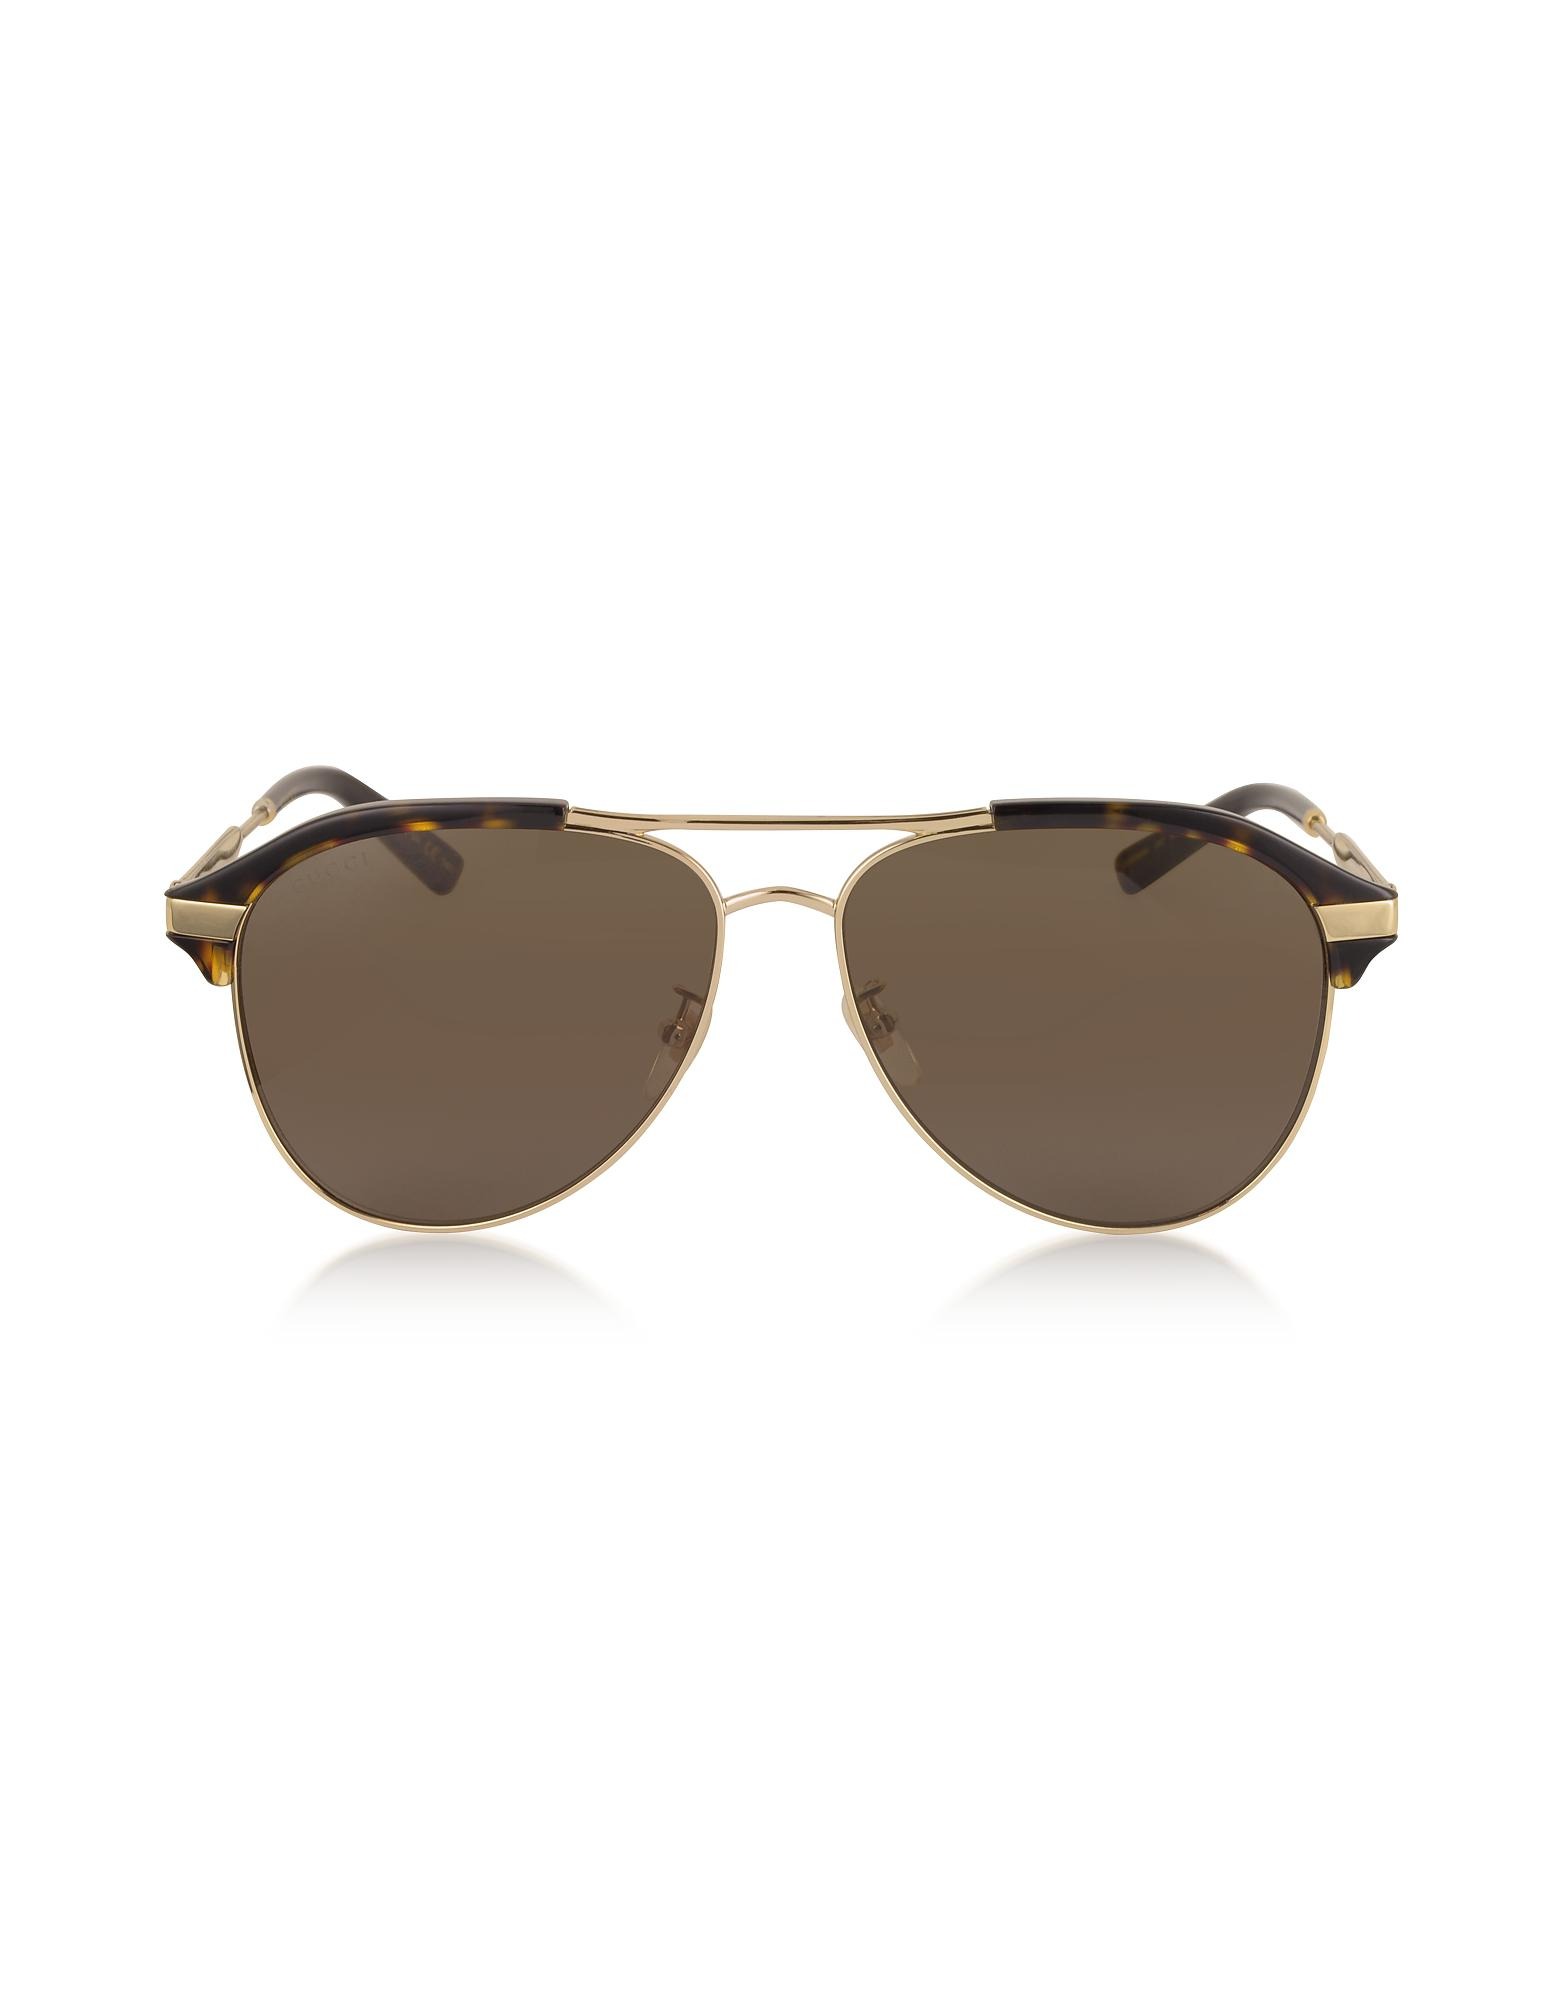 3740cb63a24ba Lyst - Gucci Specialized Fit Aviator Metal Sunglasses in Brown for Men